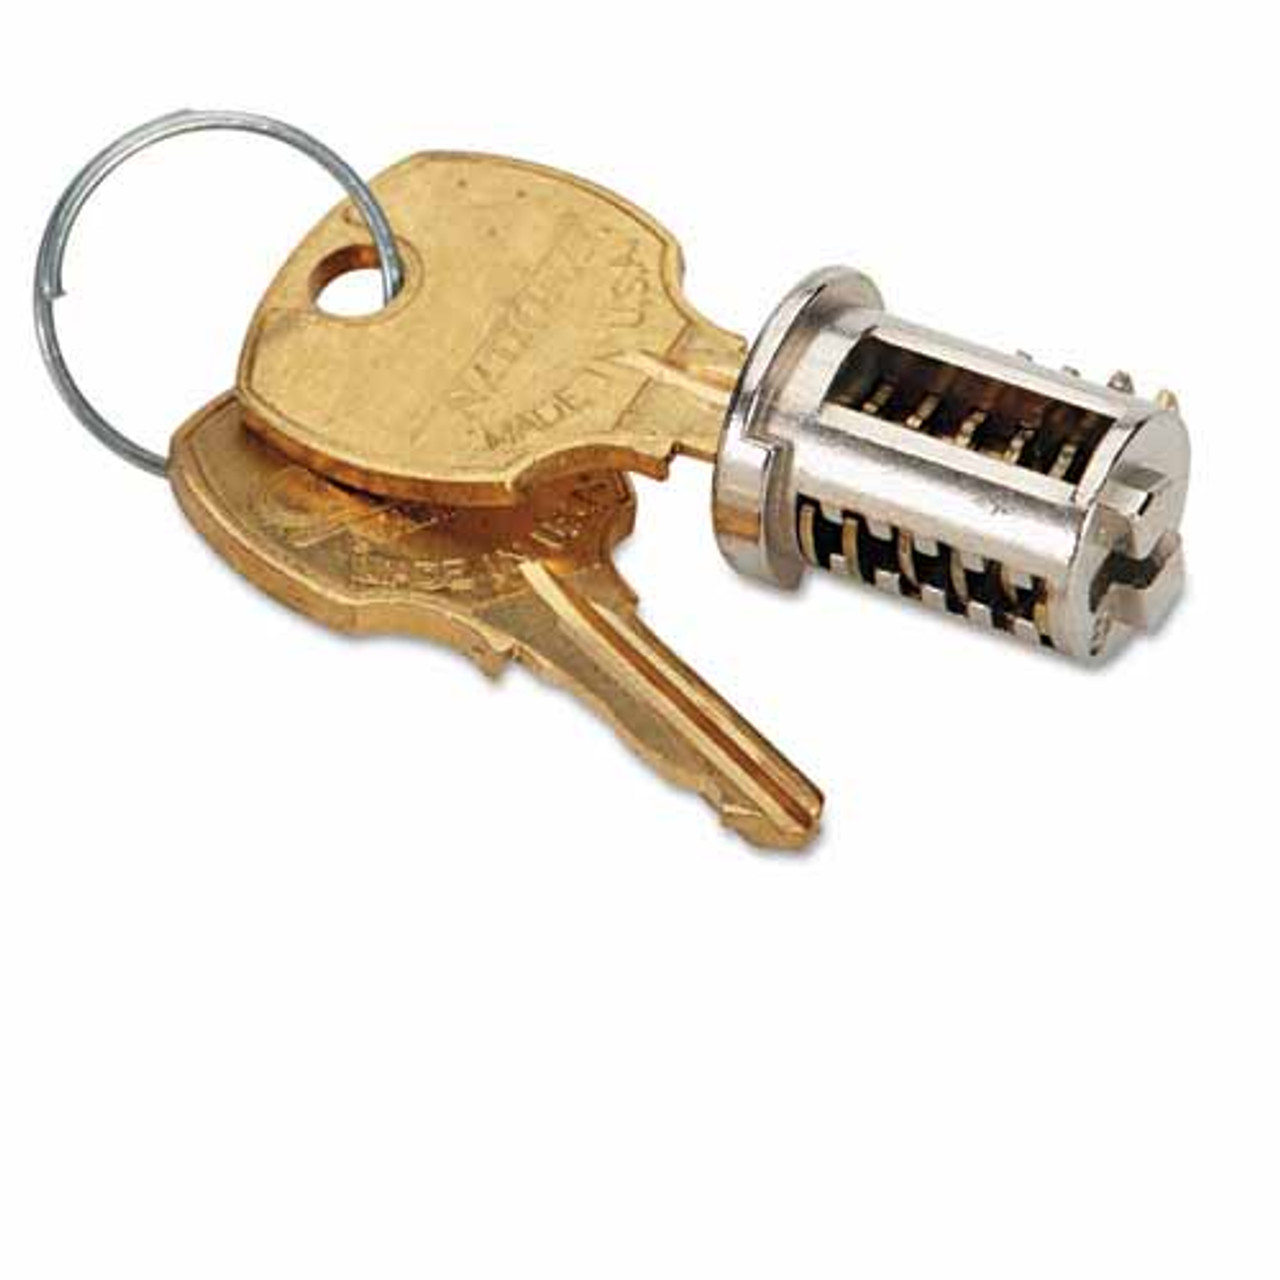 Lock Core And Key Replacement Kit For File Cabinets